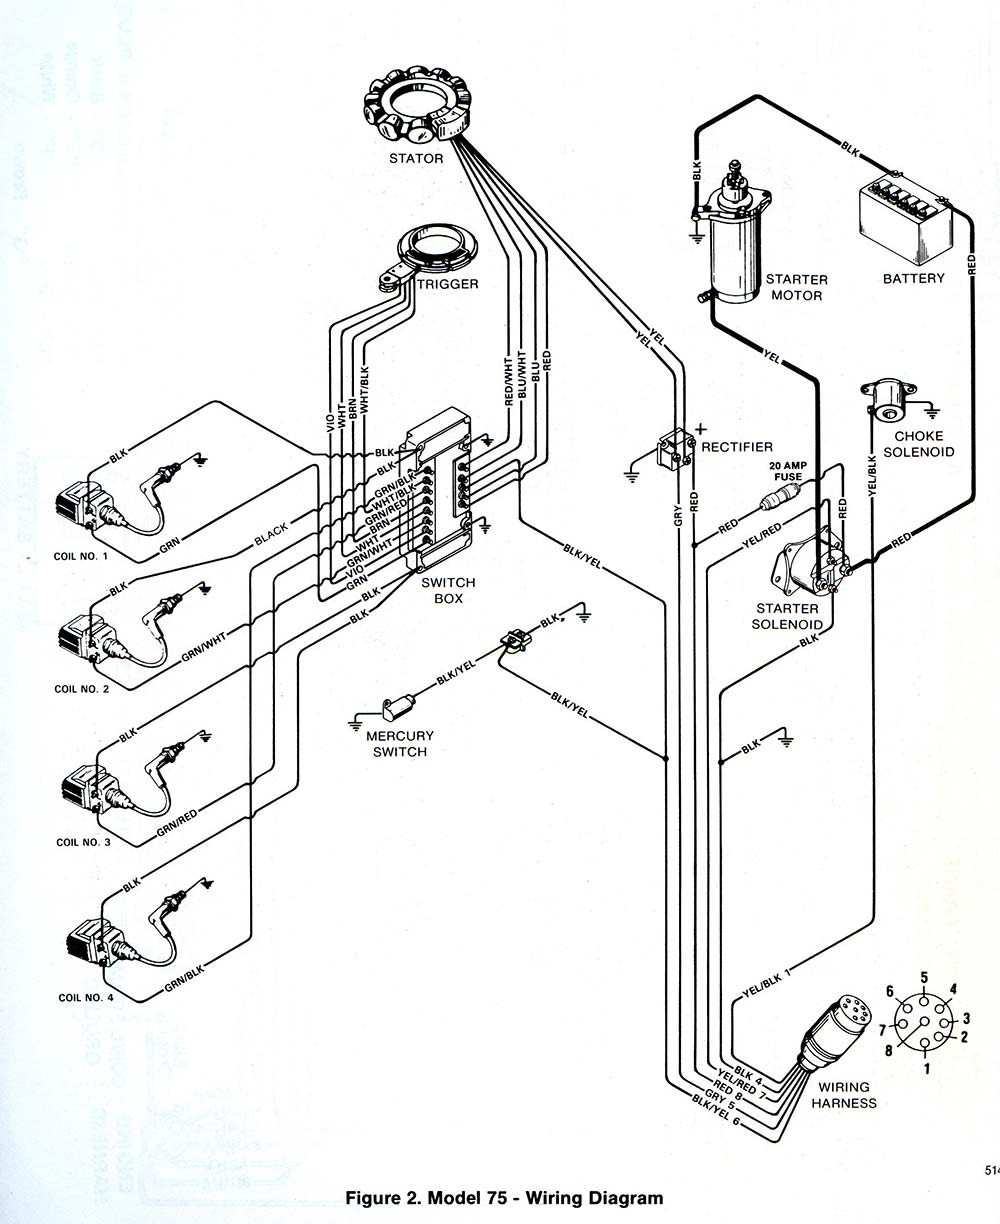 Wiring Diagram For Mercury Outboard Gauges | Wiring Diagram on water pump wiring diagram, router wiring diagram, outboard motor wiring diagram, tilt trim troubleshooting, electrical wiring diagram, tilt kettle wiring diagram, tilt trim motor, tilt and trim problems, rectifier wiring diagram, fuel system wiring diagram, tilt trim assembly, tilt trim controls, tilt trim gauge wiring, door wiring diagram, oil wiring diagram, ignition wiring diagram, stator wiring diagram, power tilt wiring diagram, condenser wiring diagram, center console wiring diagram,